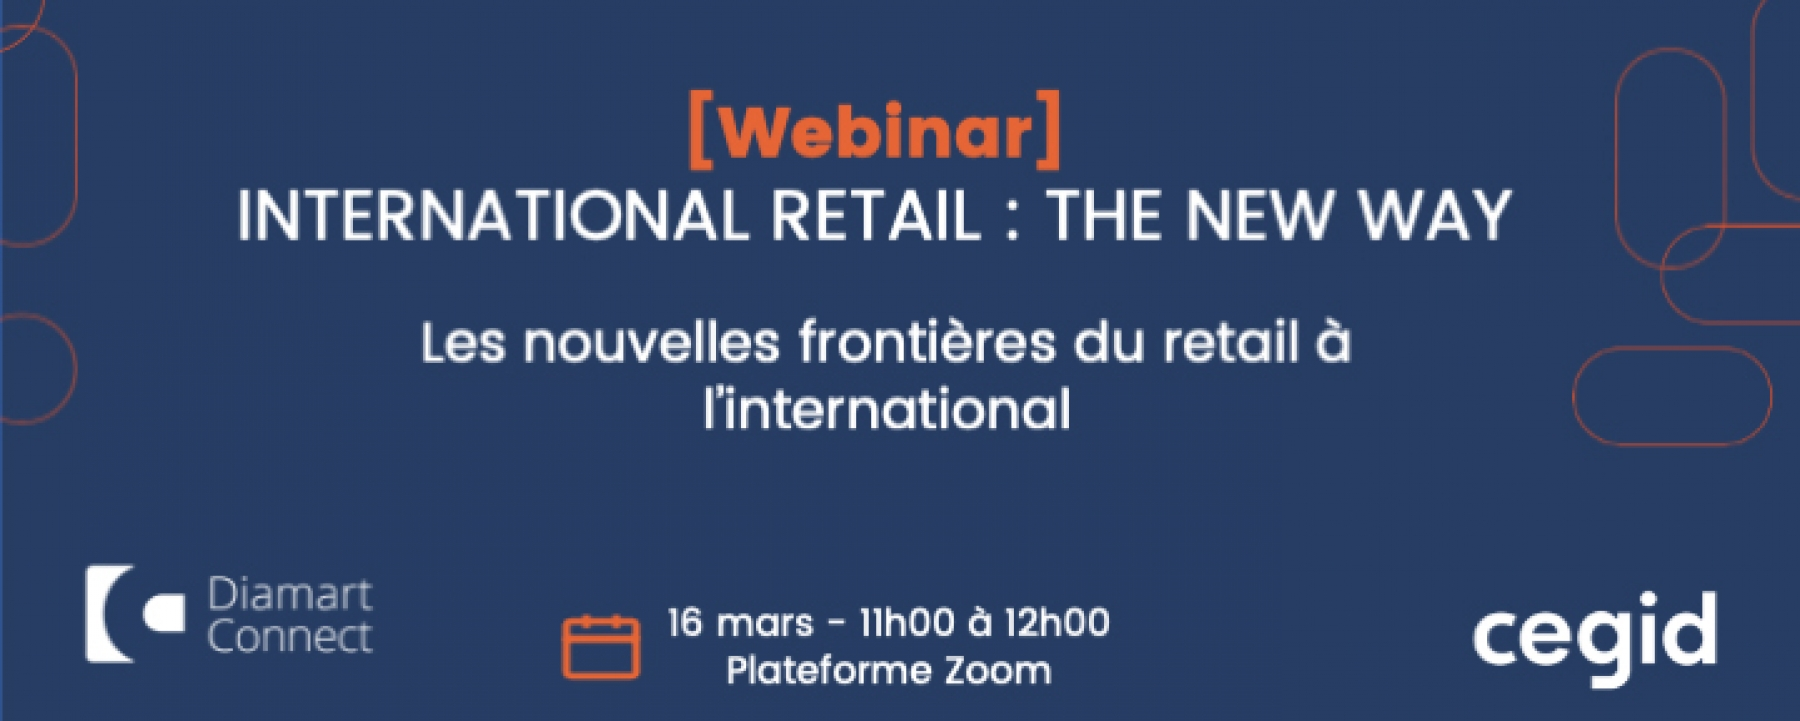 International retail : The new way, un webinar organisé le 16 mars 2021 par Diamart Group